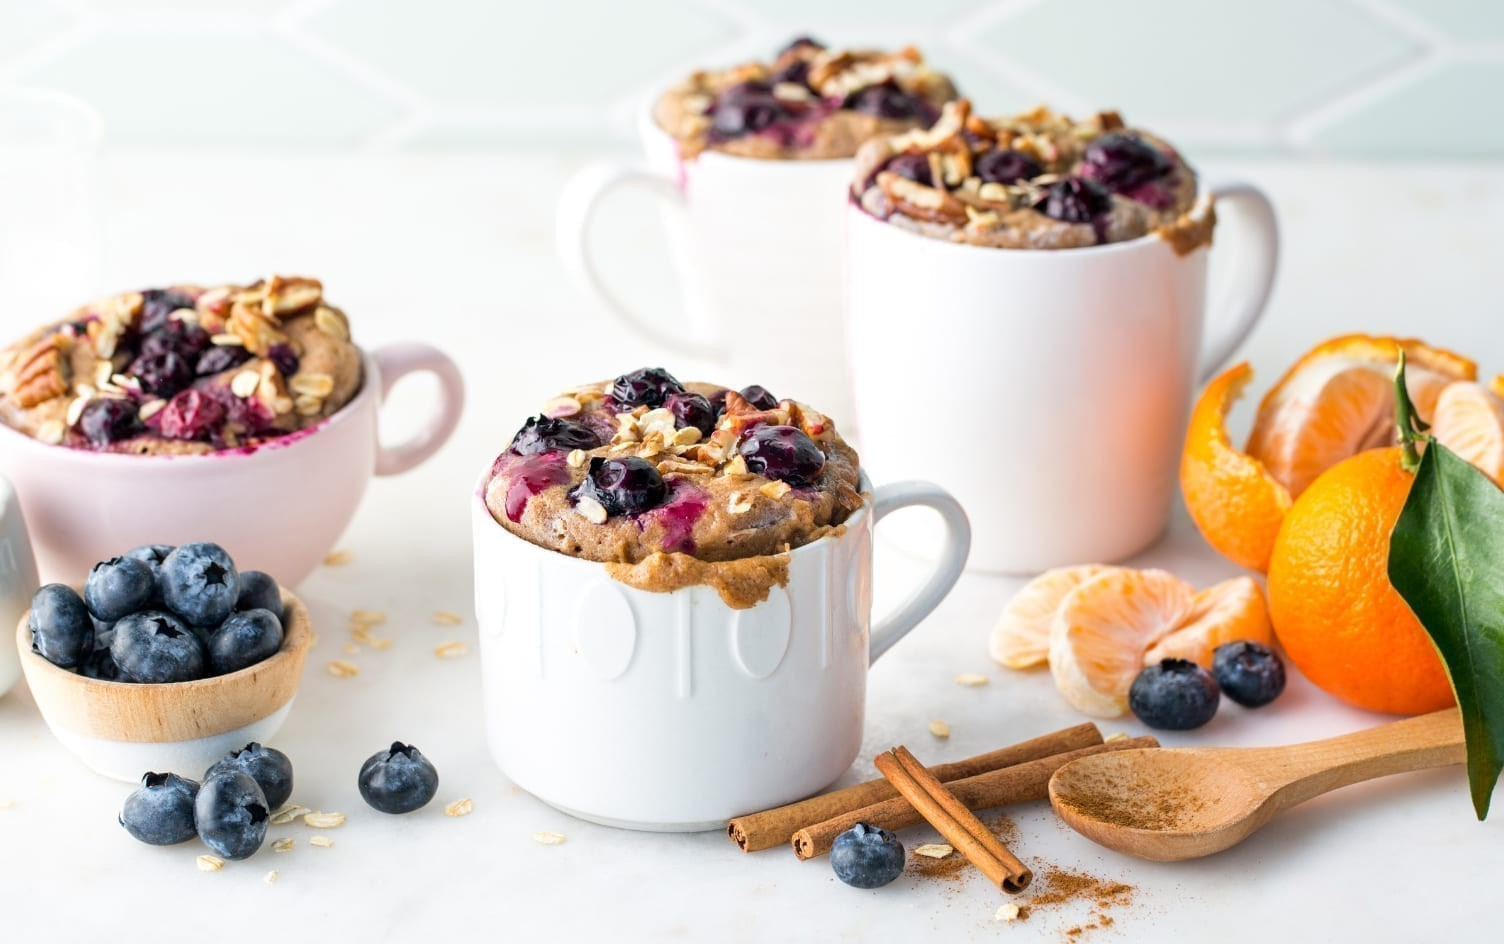 Blueberry-Breakfast-Mug-Cake.jpg